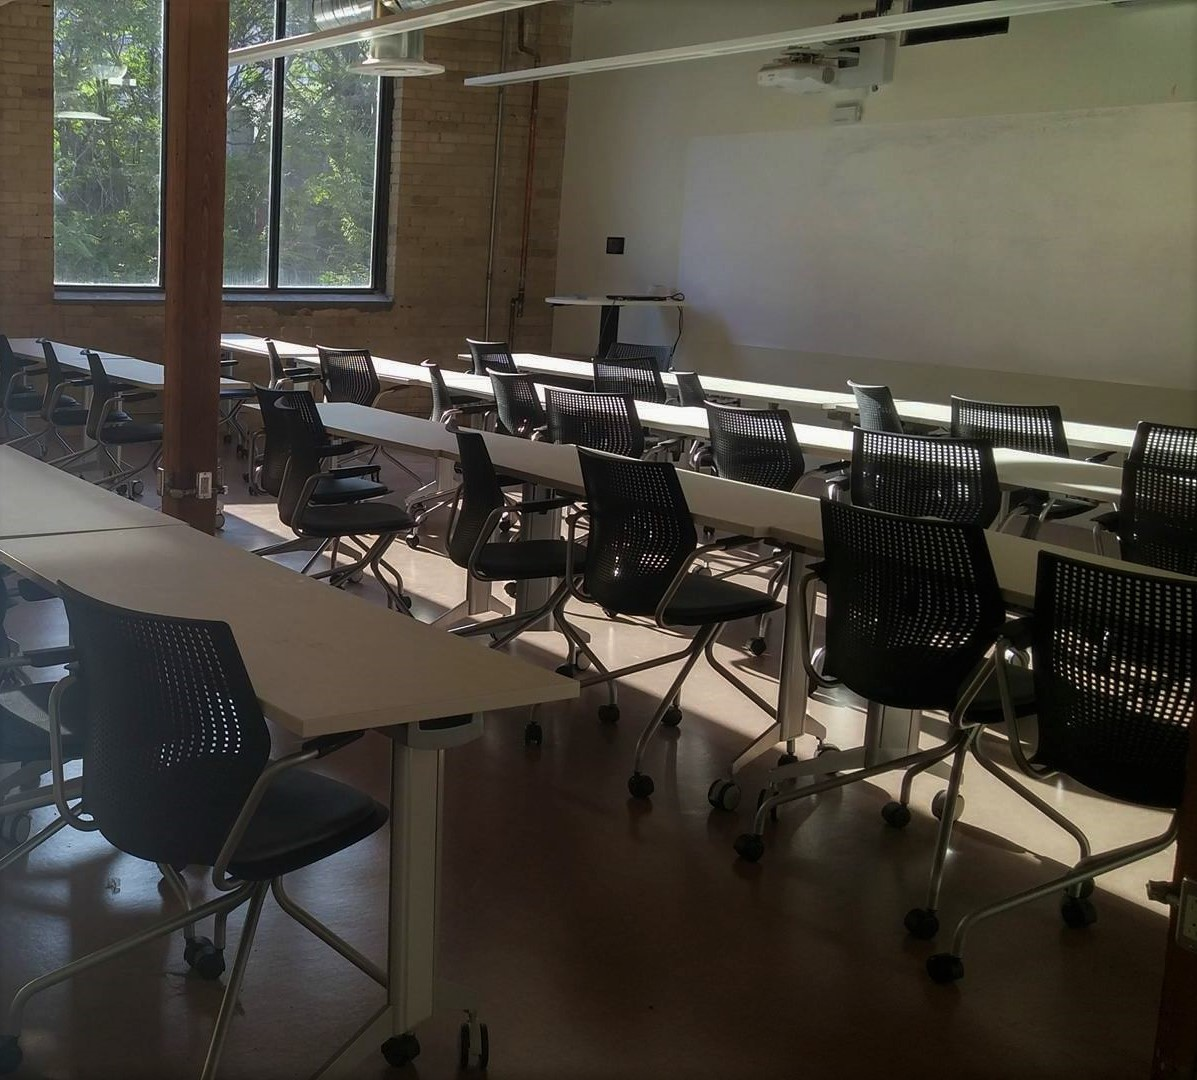 The renovated SJE building on Richmond Street features new classrooms and labs for students. Photo: Naomi Guha / The Dialog